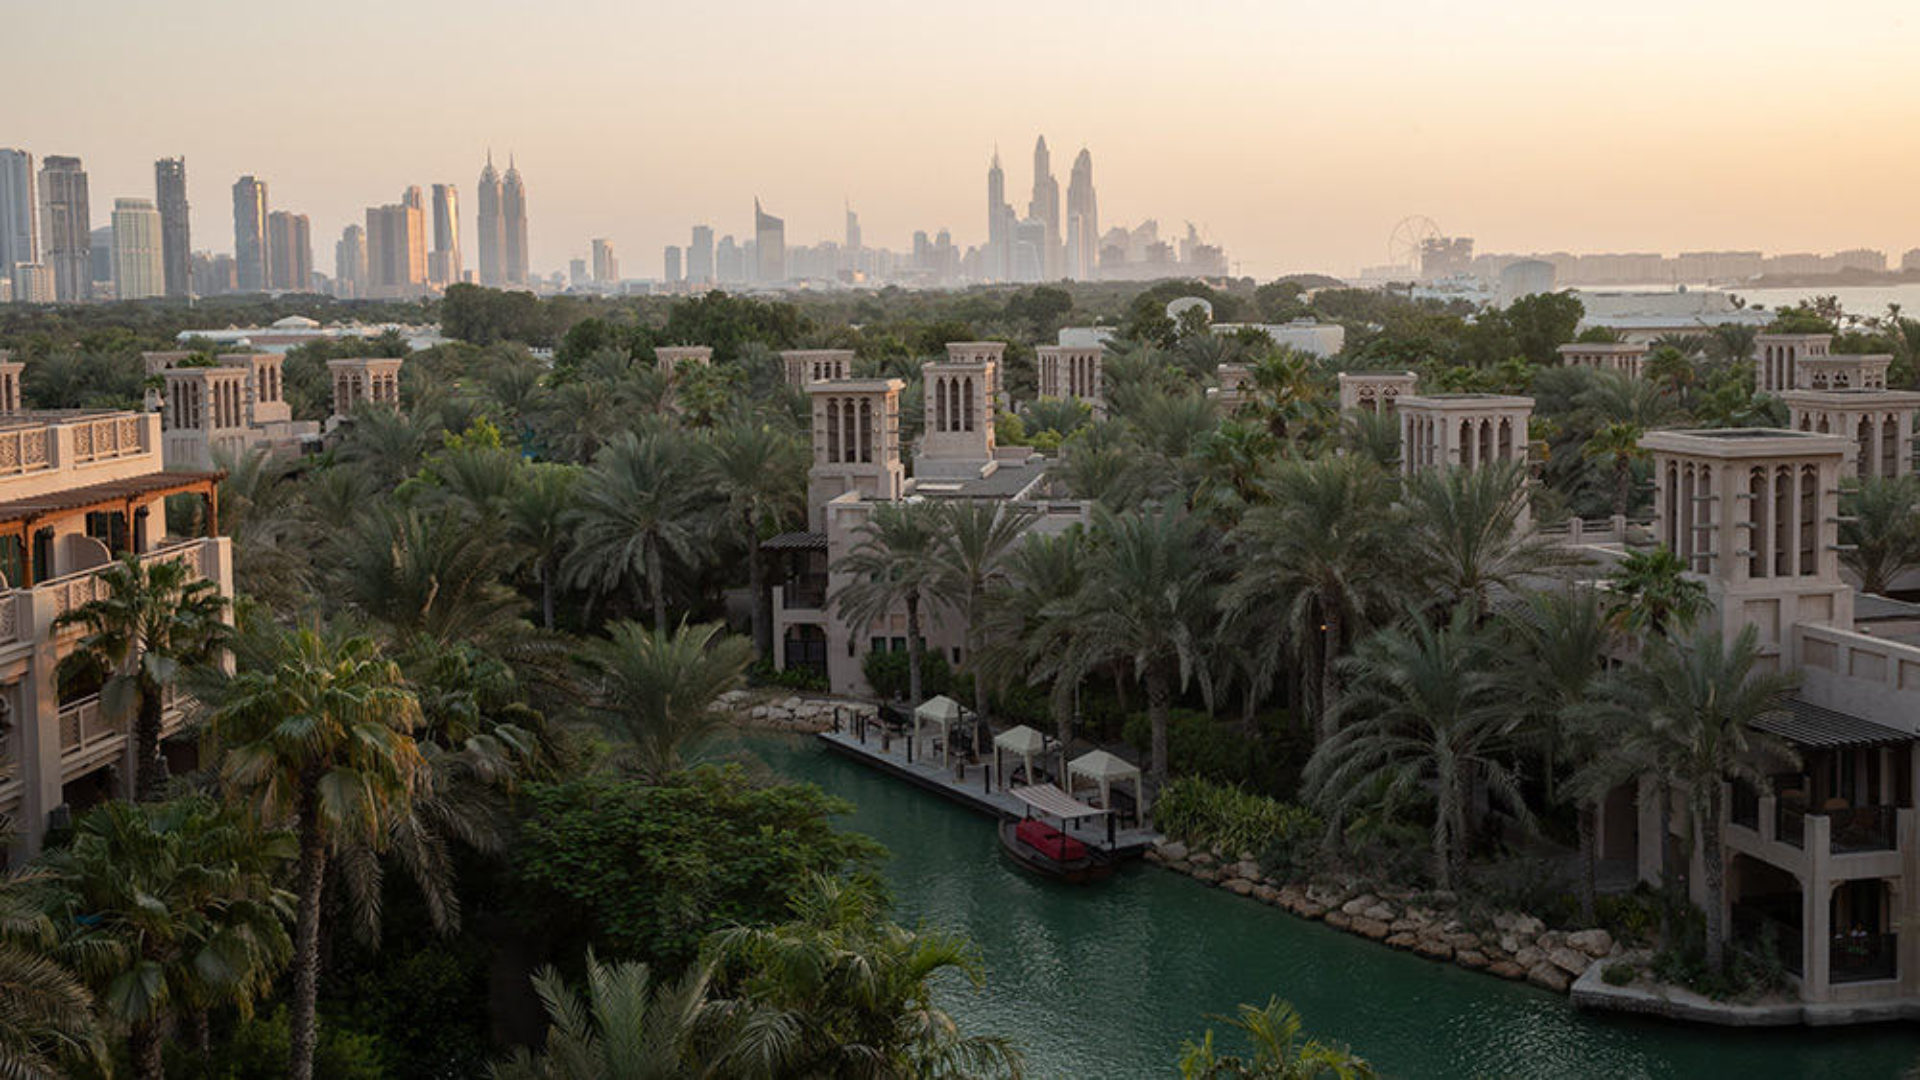 View of Dubai skyline at sunset from Jumeirah Dar Al Masyaf